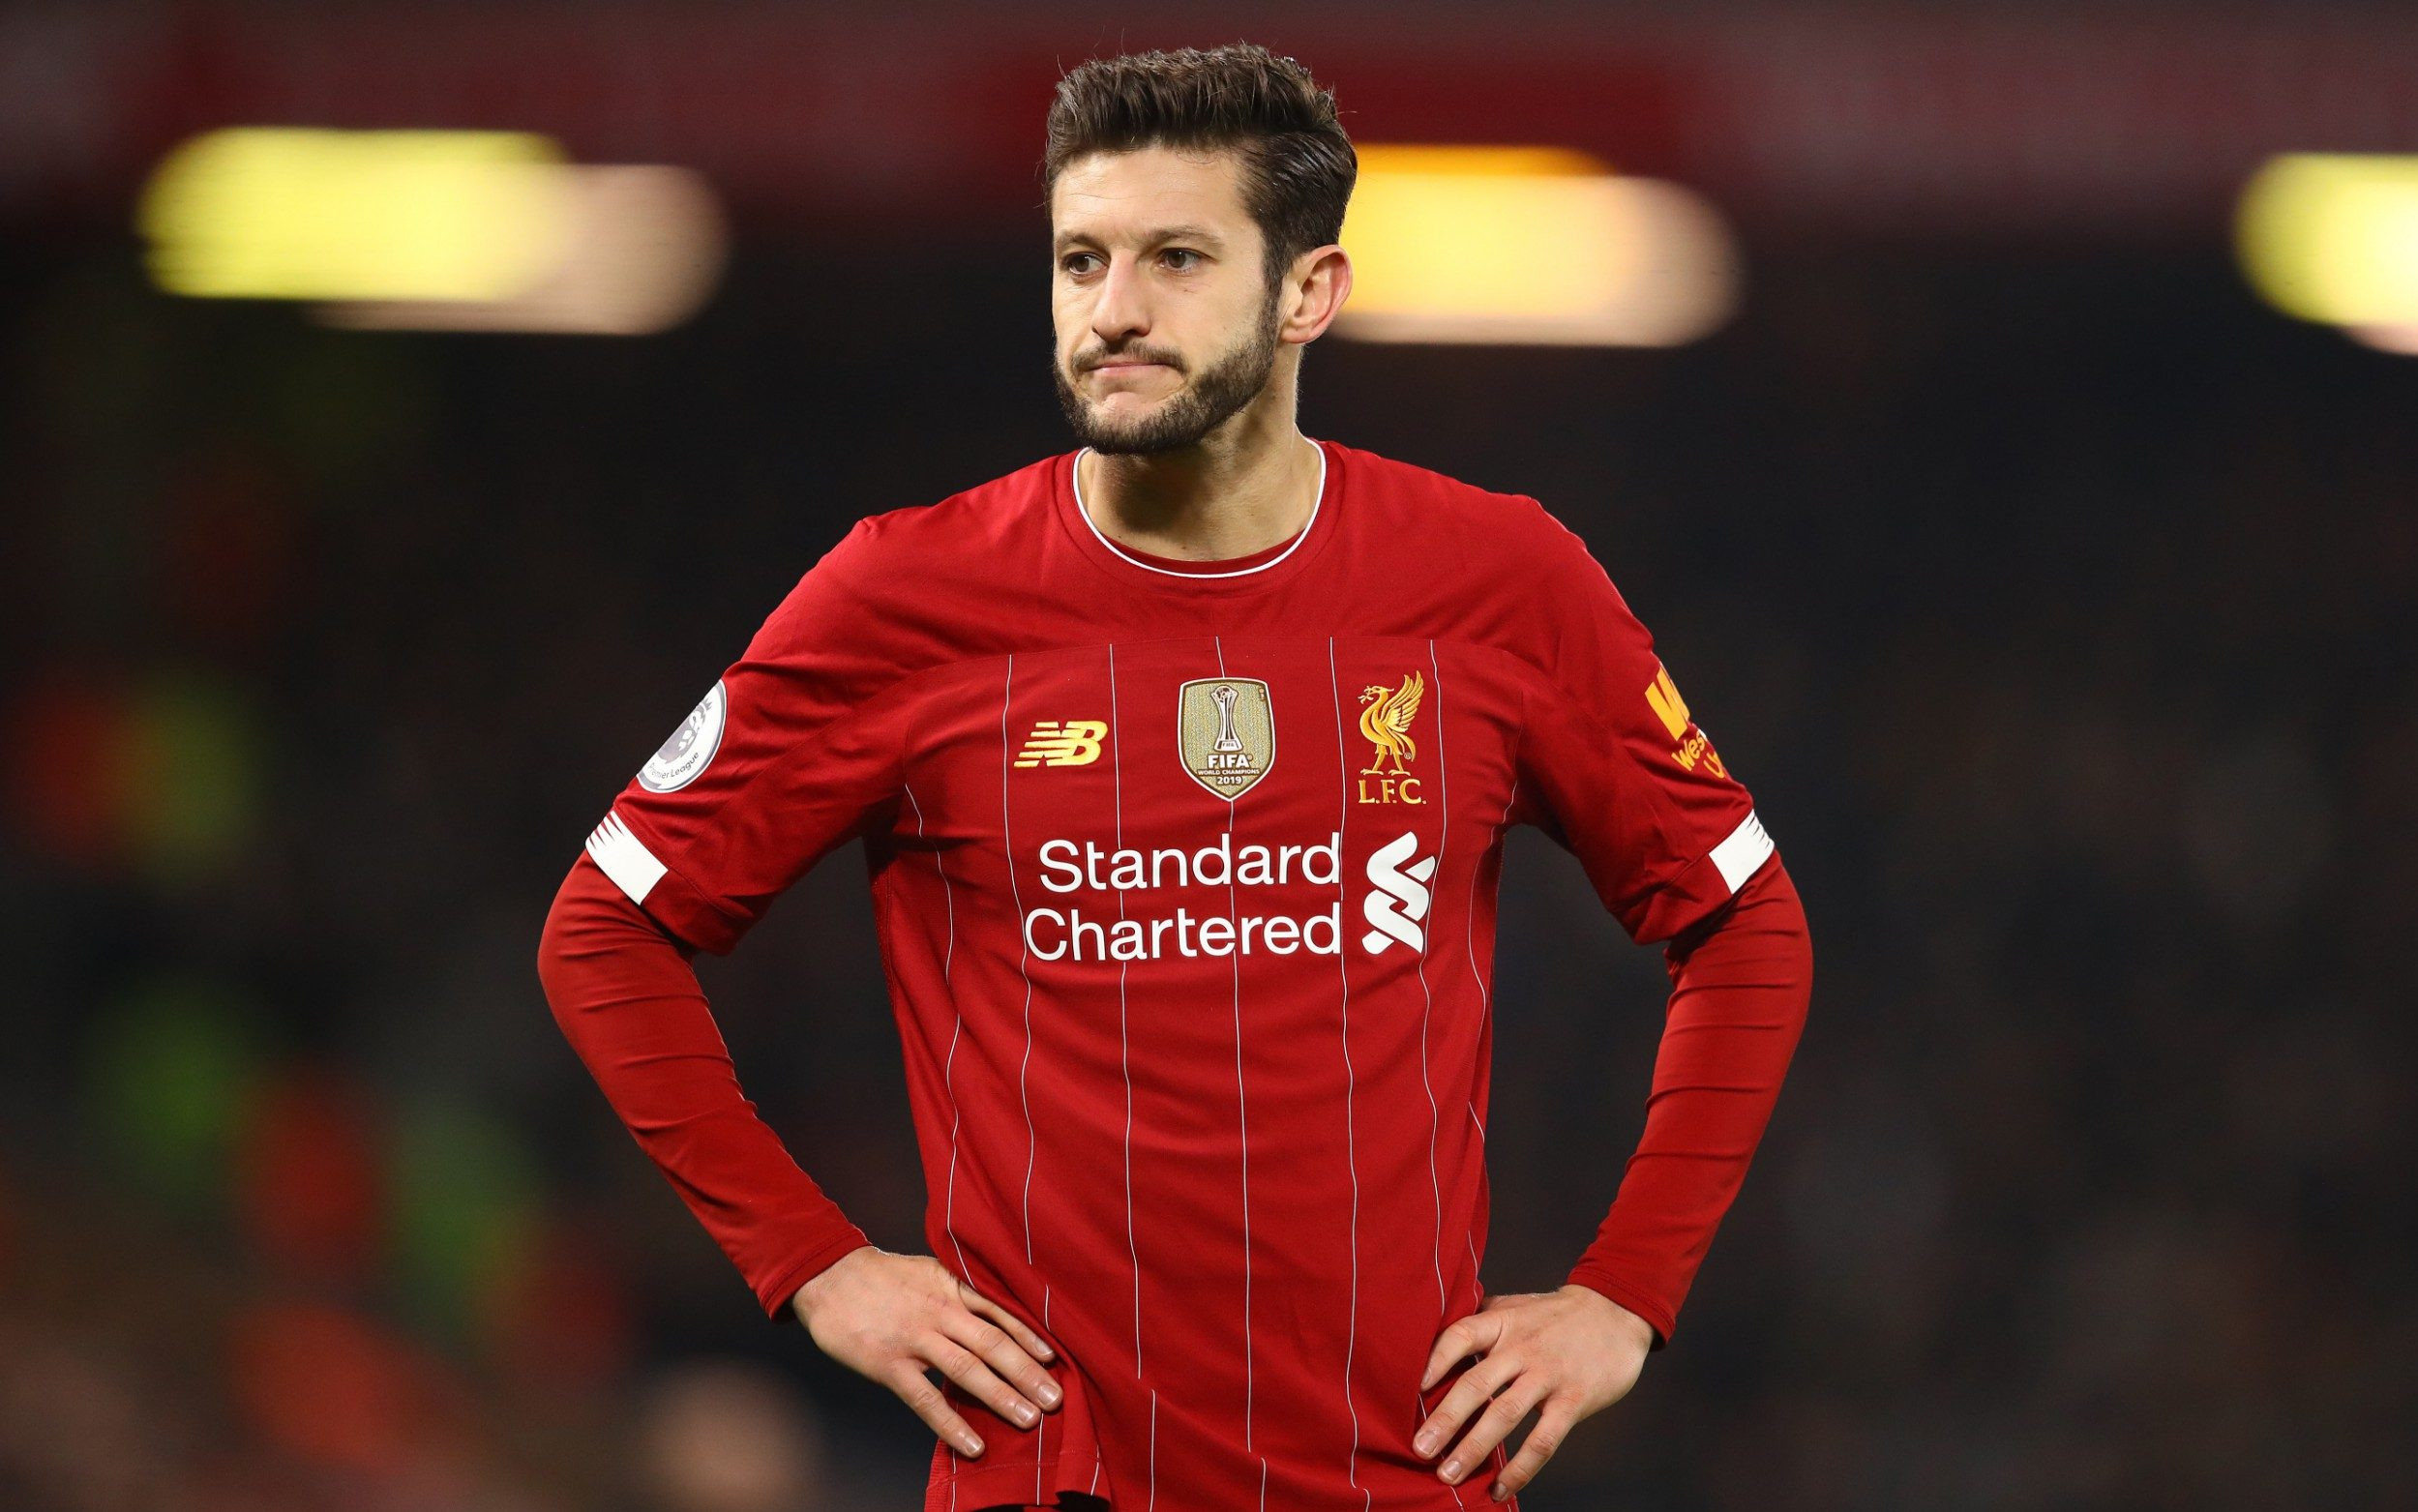 Adam Lallana agrees new contract with Liverpool